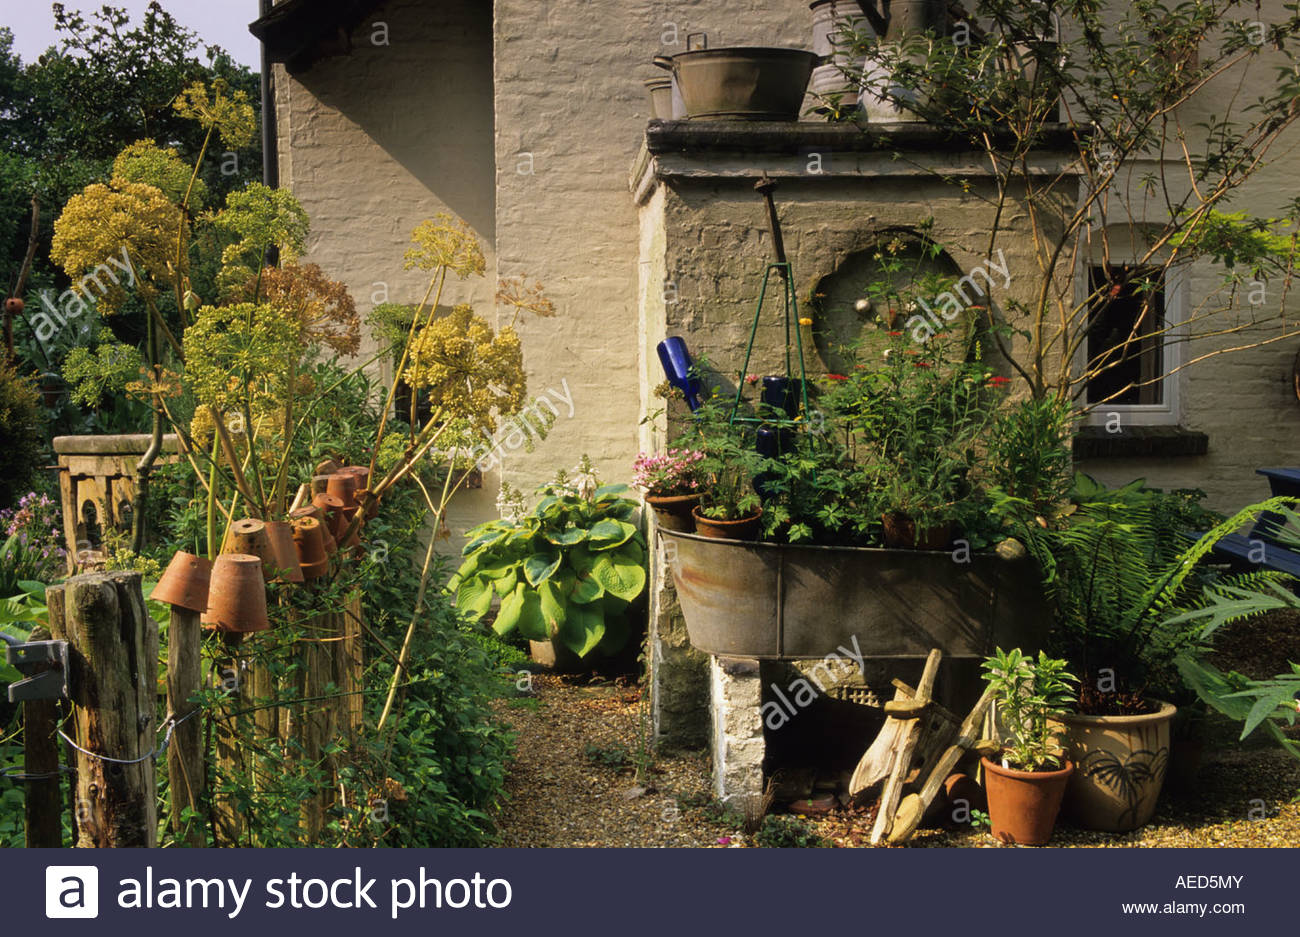 Genial Five Oaks Sussex Rustic Country Garden With Bygones As Sculpture And  Containers Inverted Terracotta Pots On Fence Posts